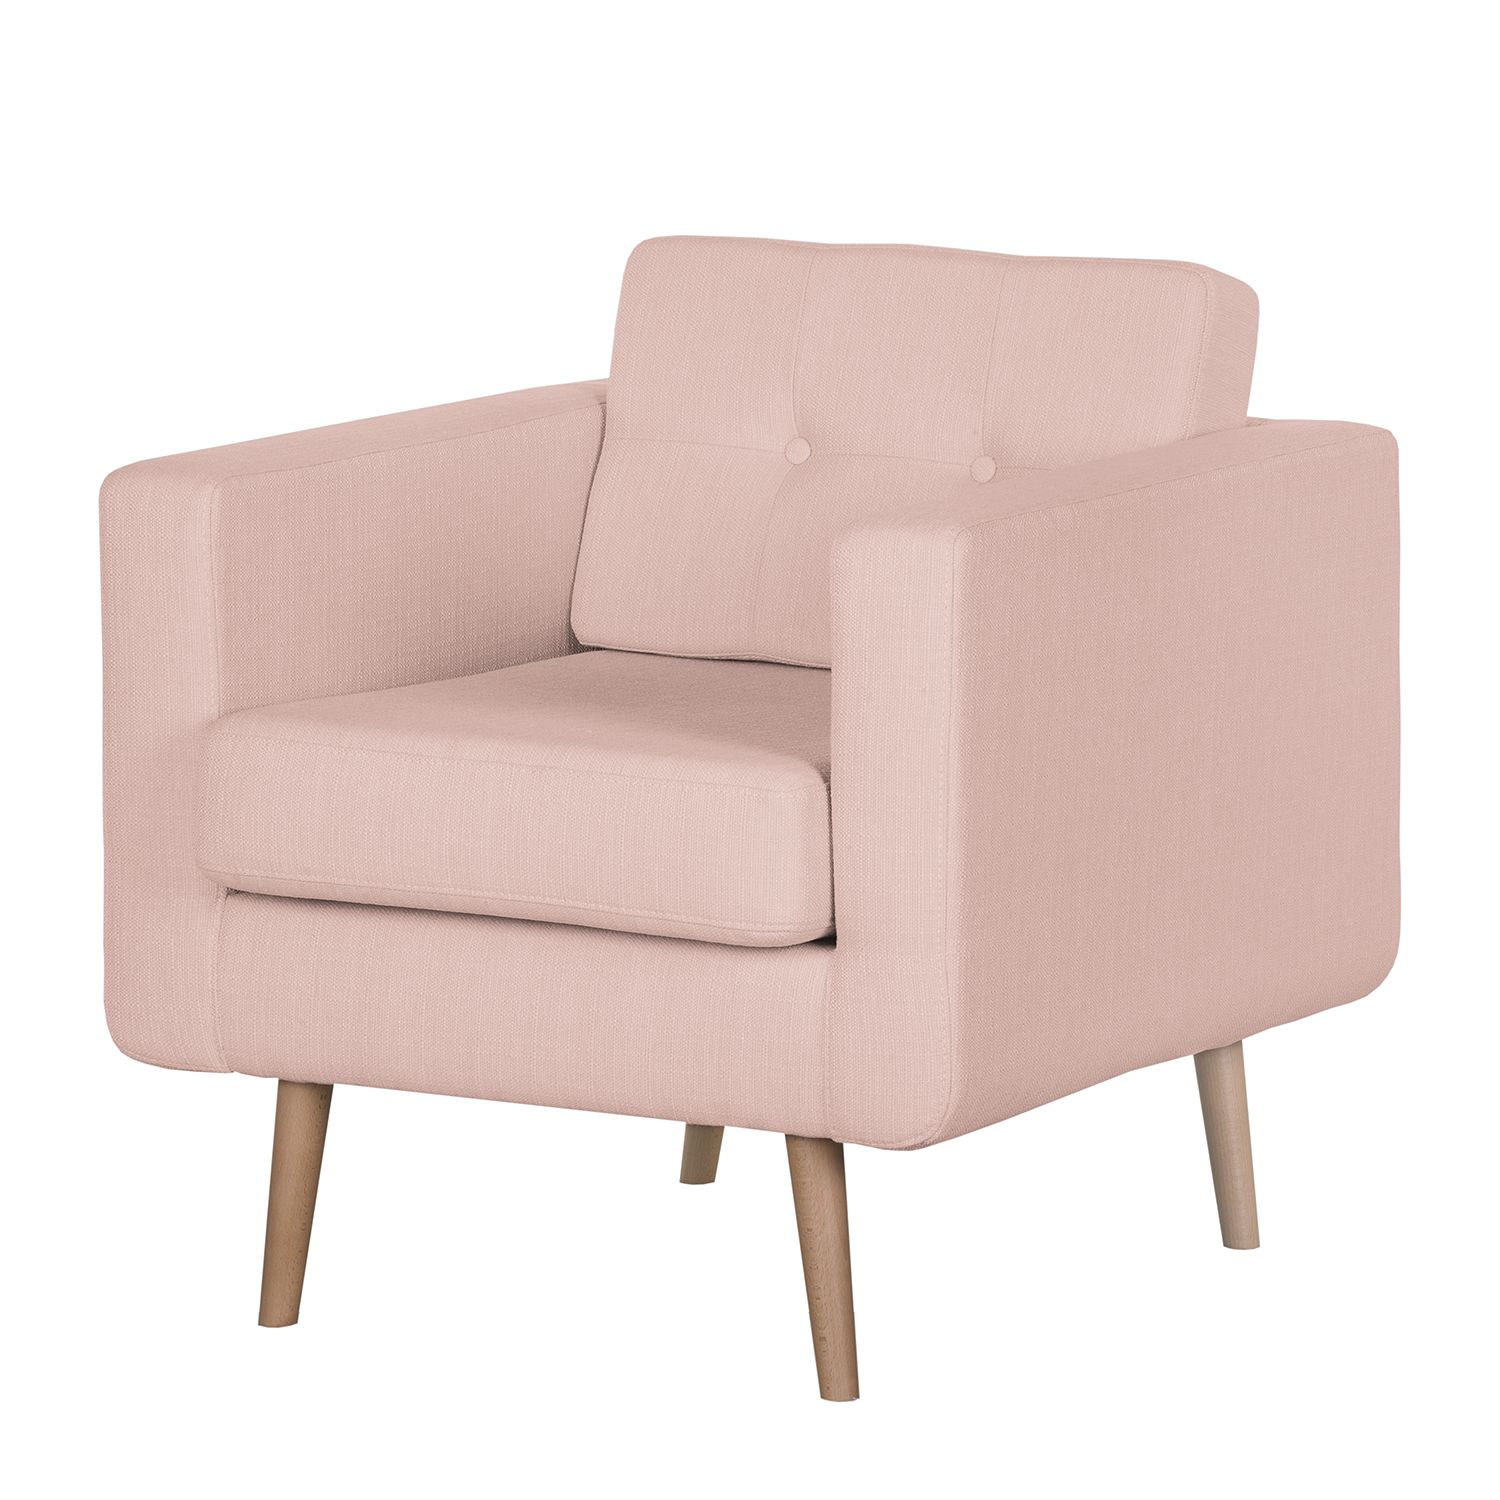 goedkoop Fauteuil Croom V geweven stof Zonder hocker Mauve Morteens